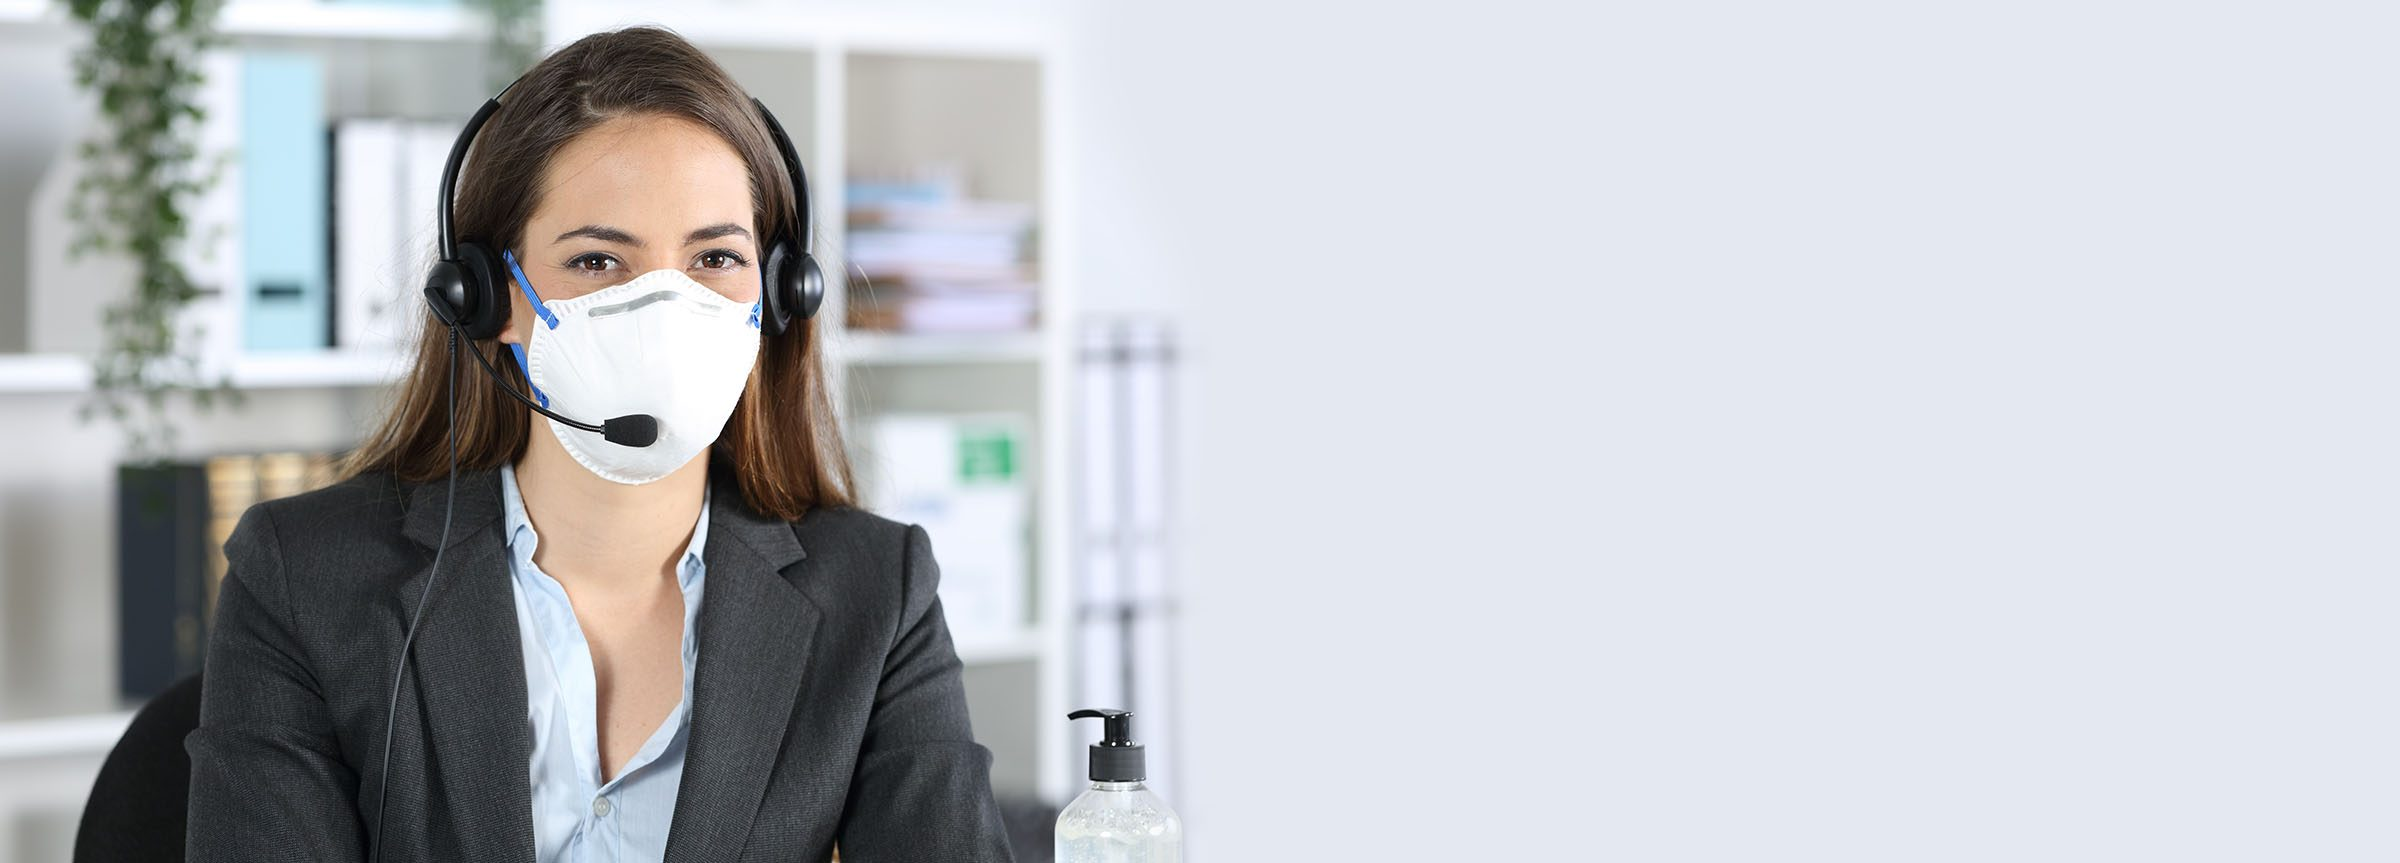 Woman with mask and headset